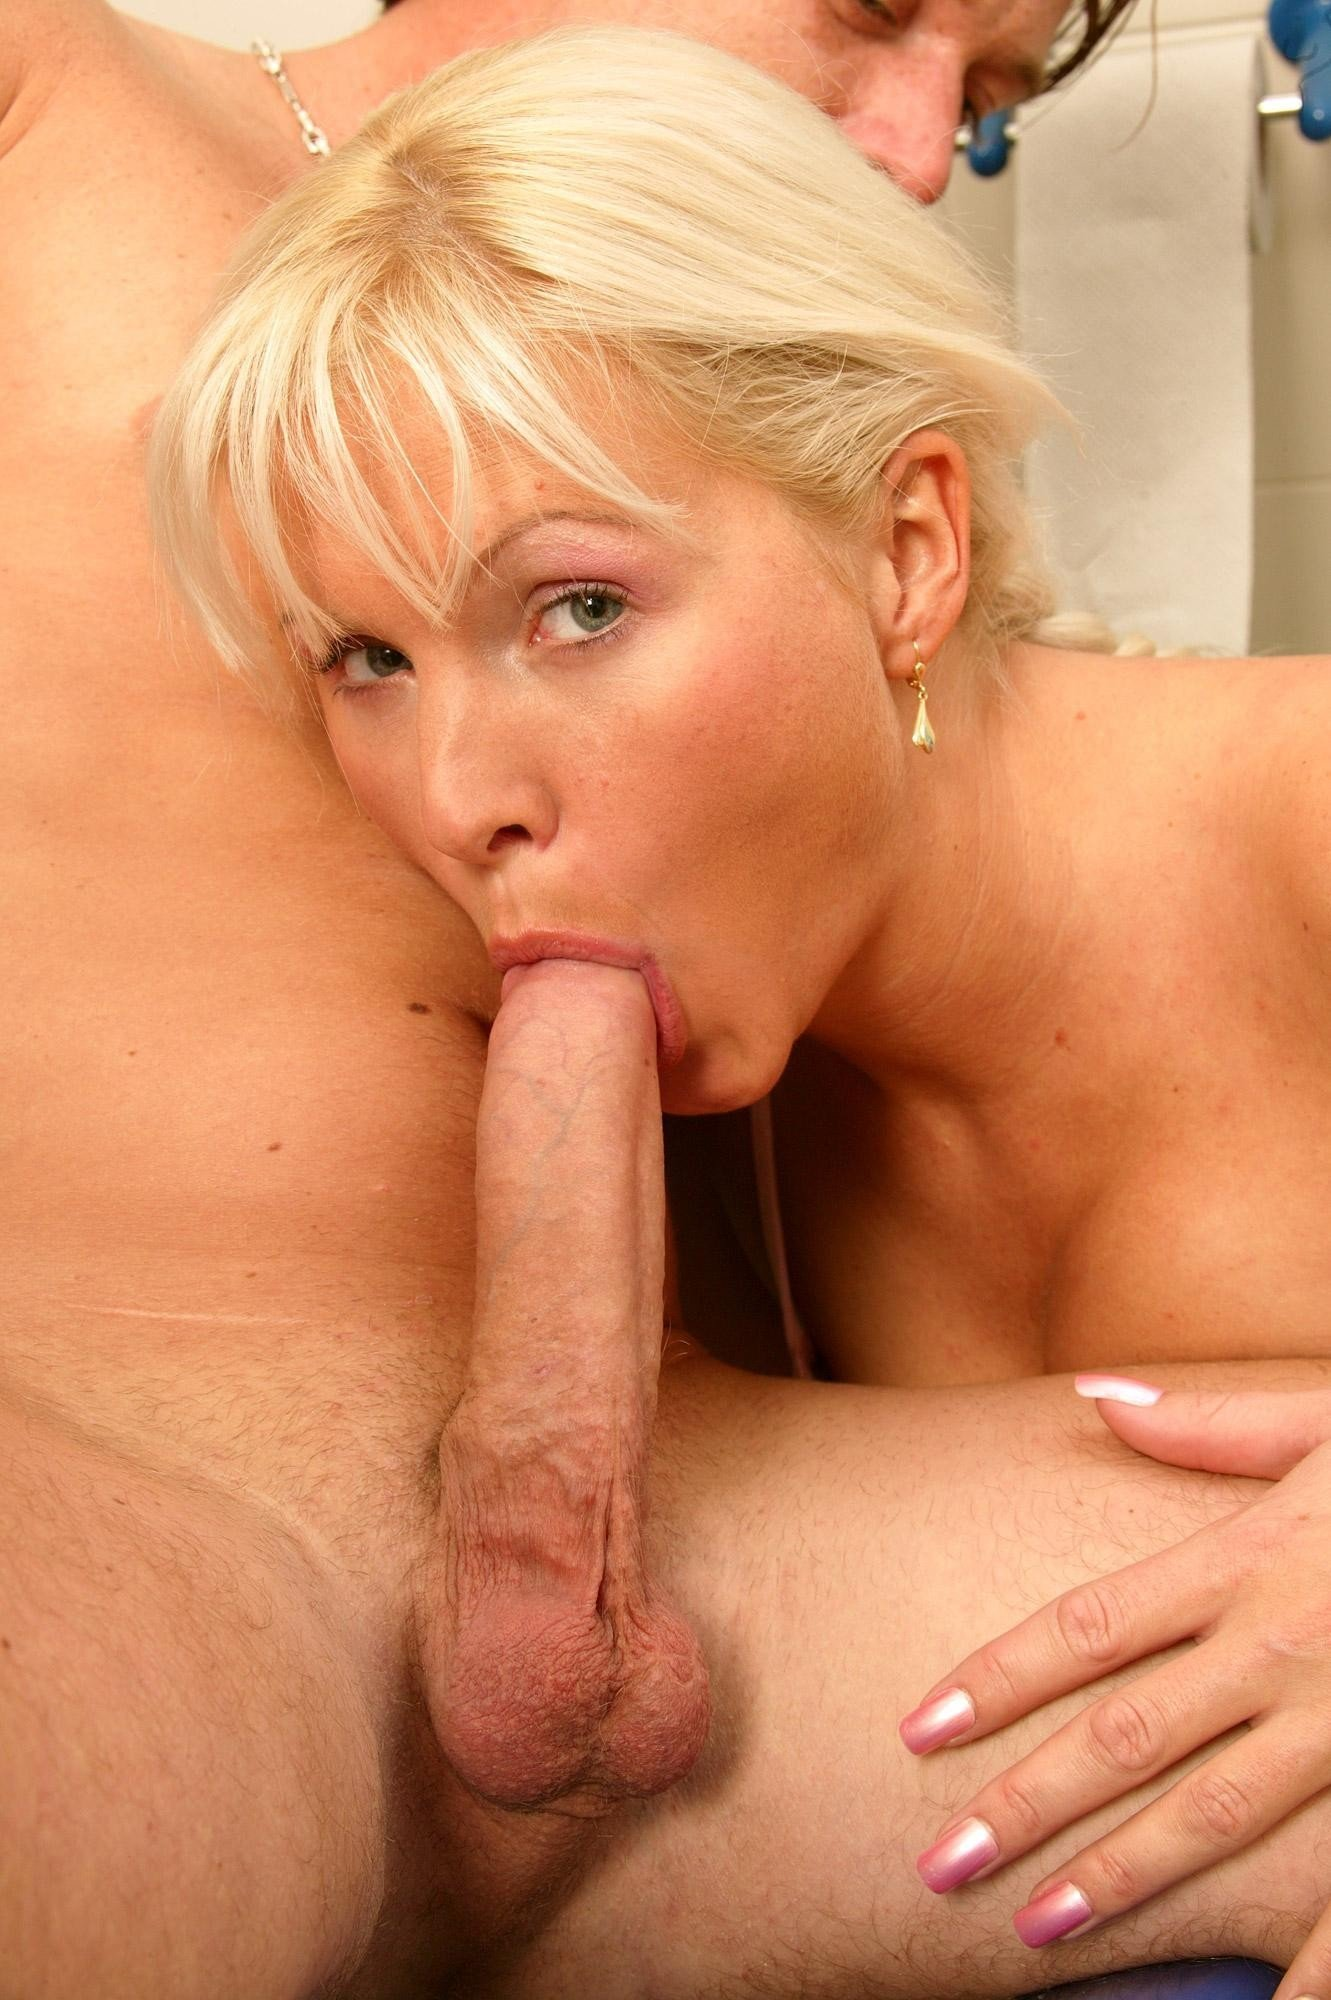 Grozragore    reccomend mature: pussy pounding pissing fissing - mature: figa sfondata pissing fissing